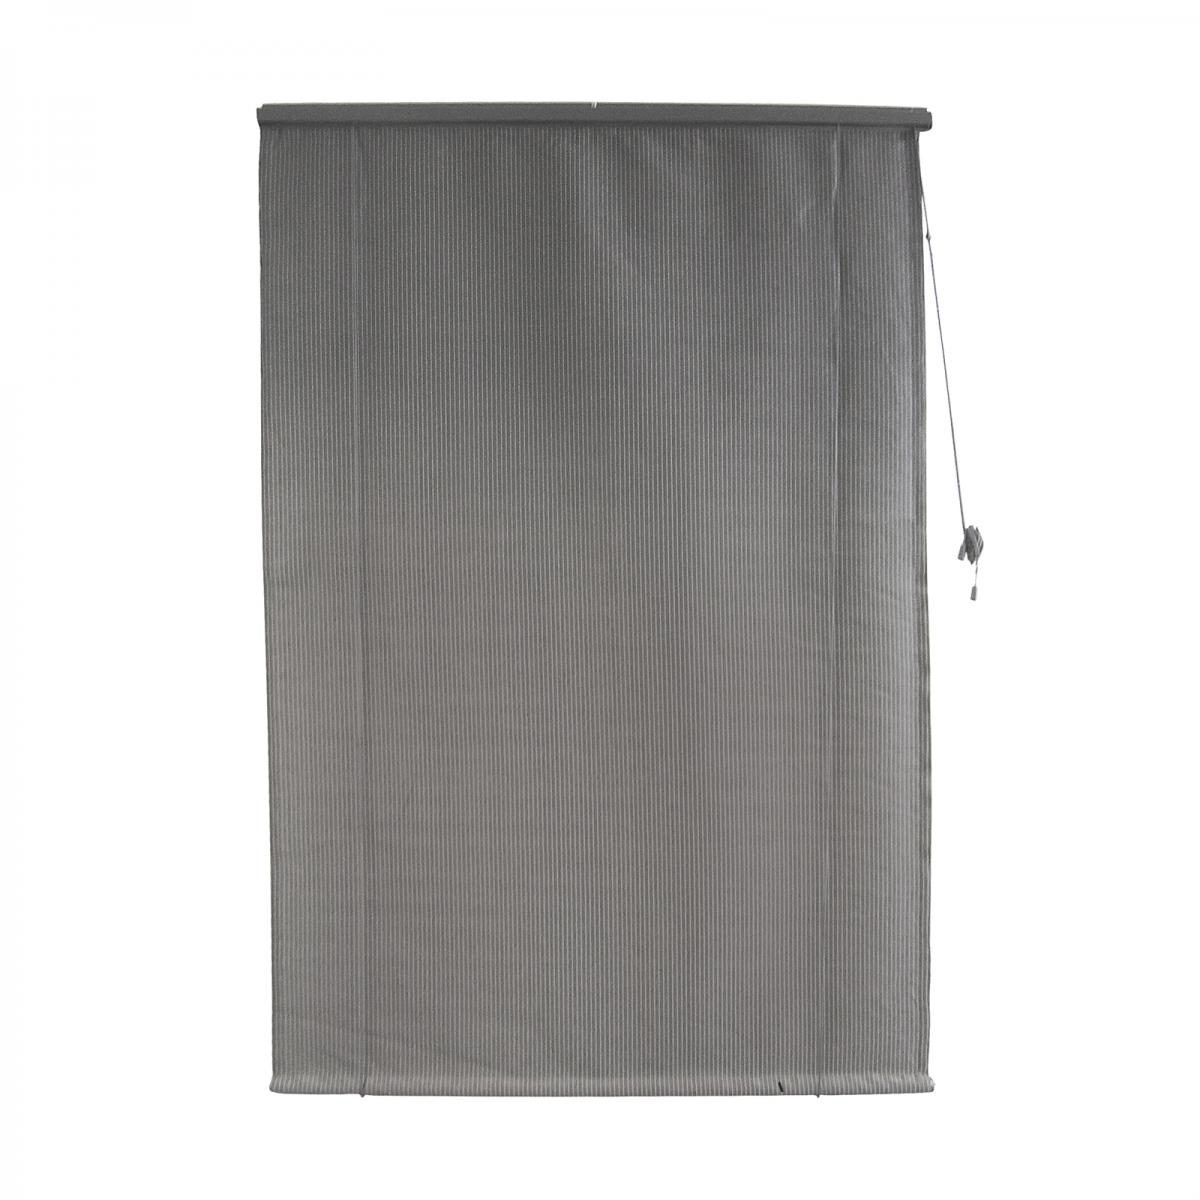 <b>Shadecloth Roll Up Blind </b><p>Graphite